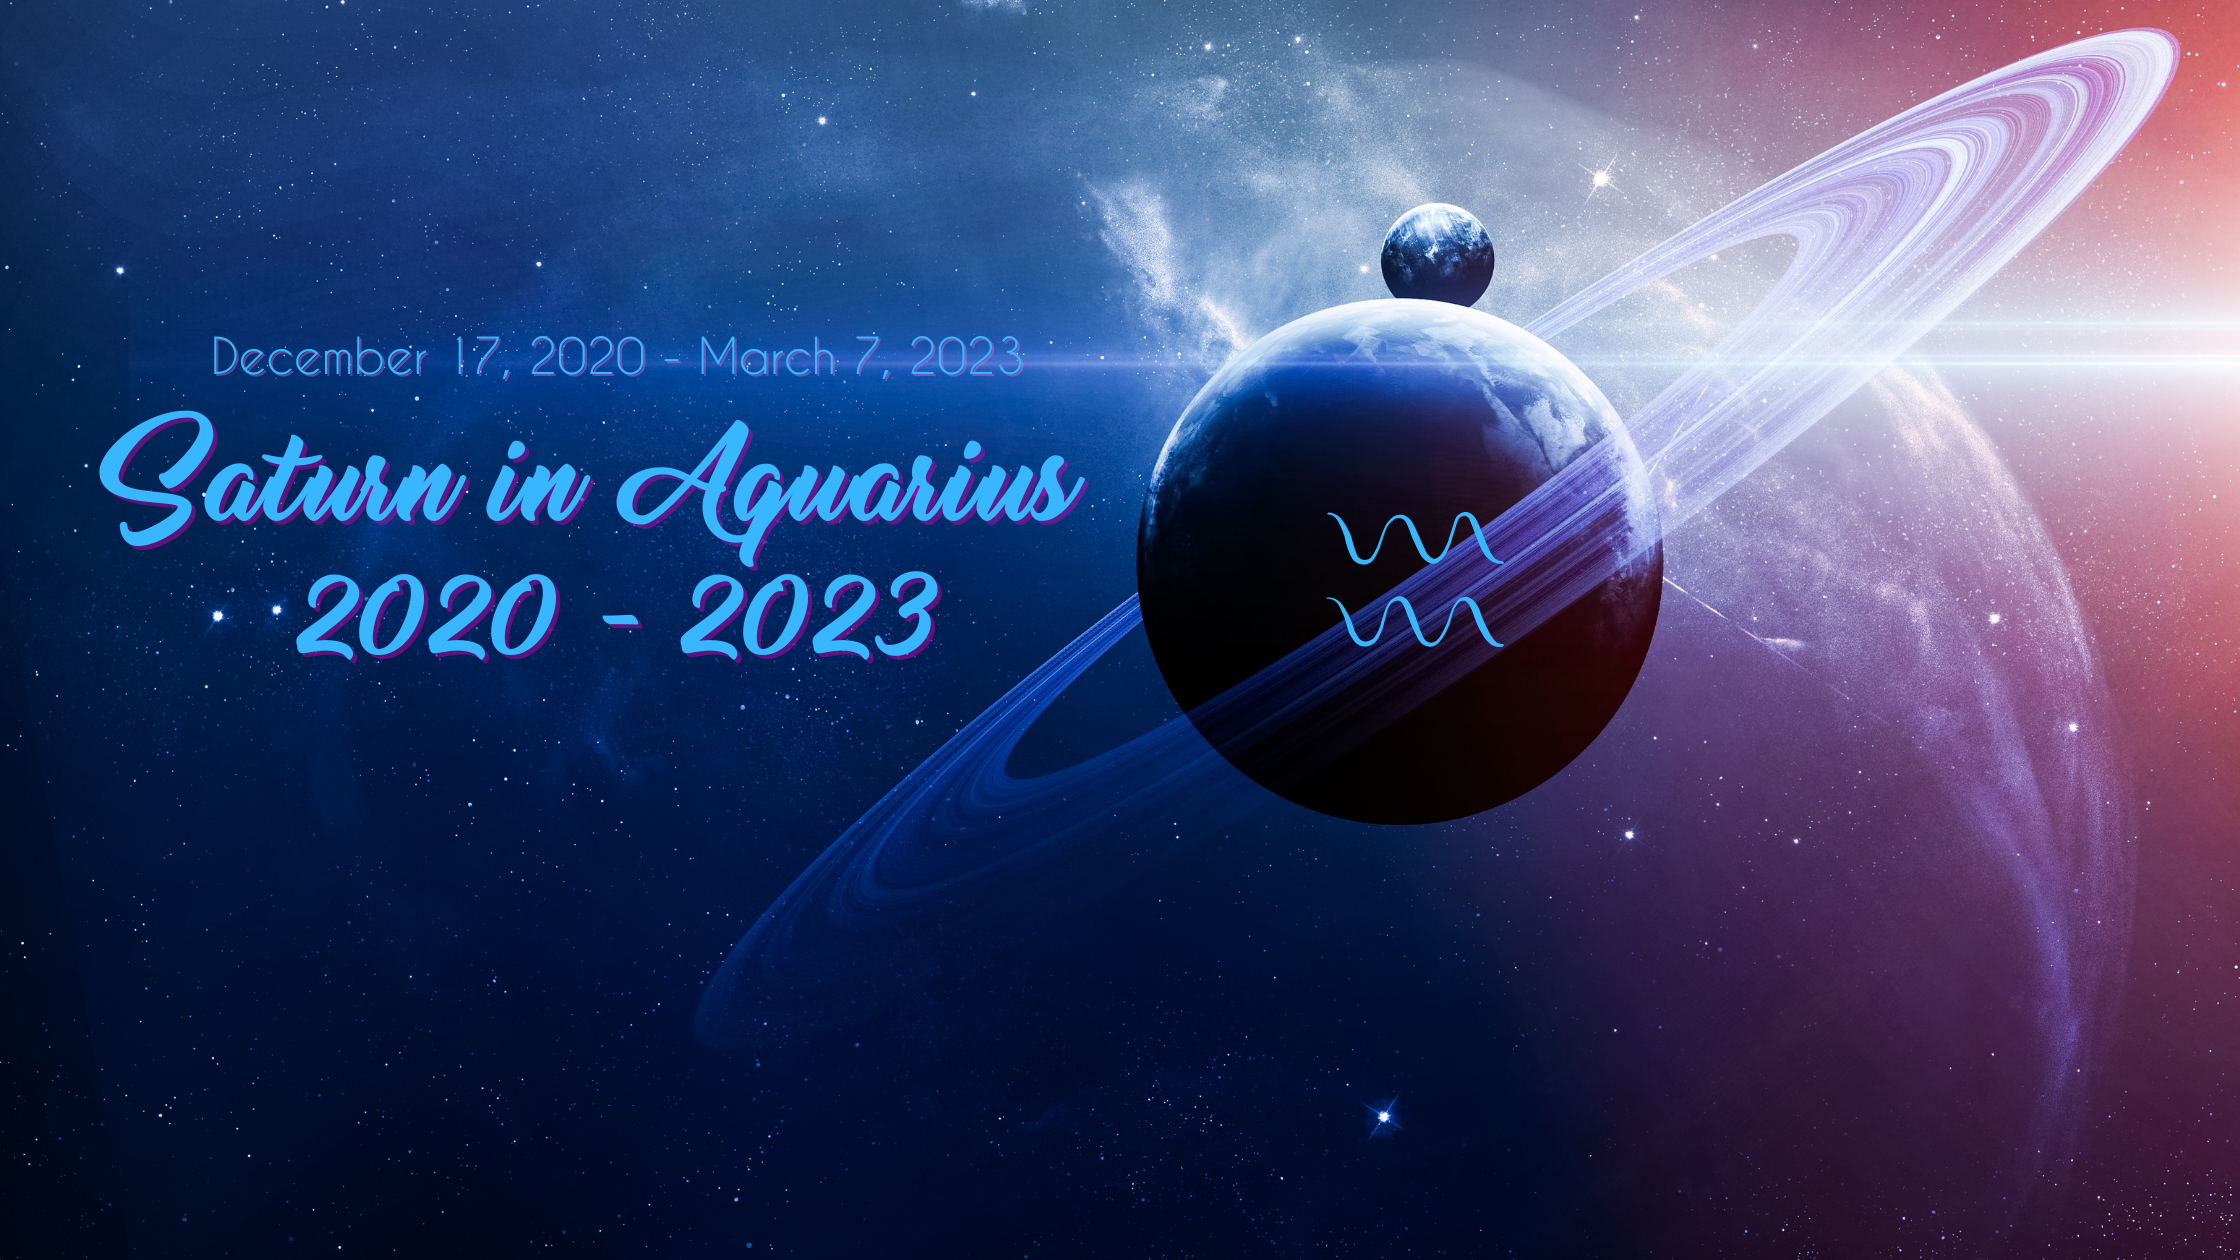 Saturn in Aquarius 2020 – 2023